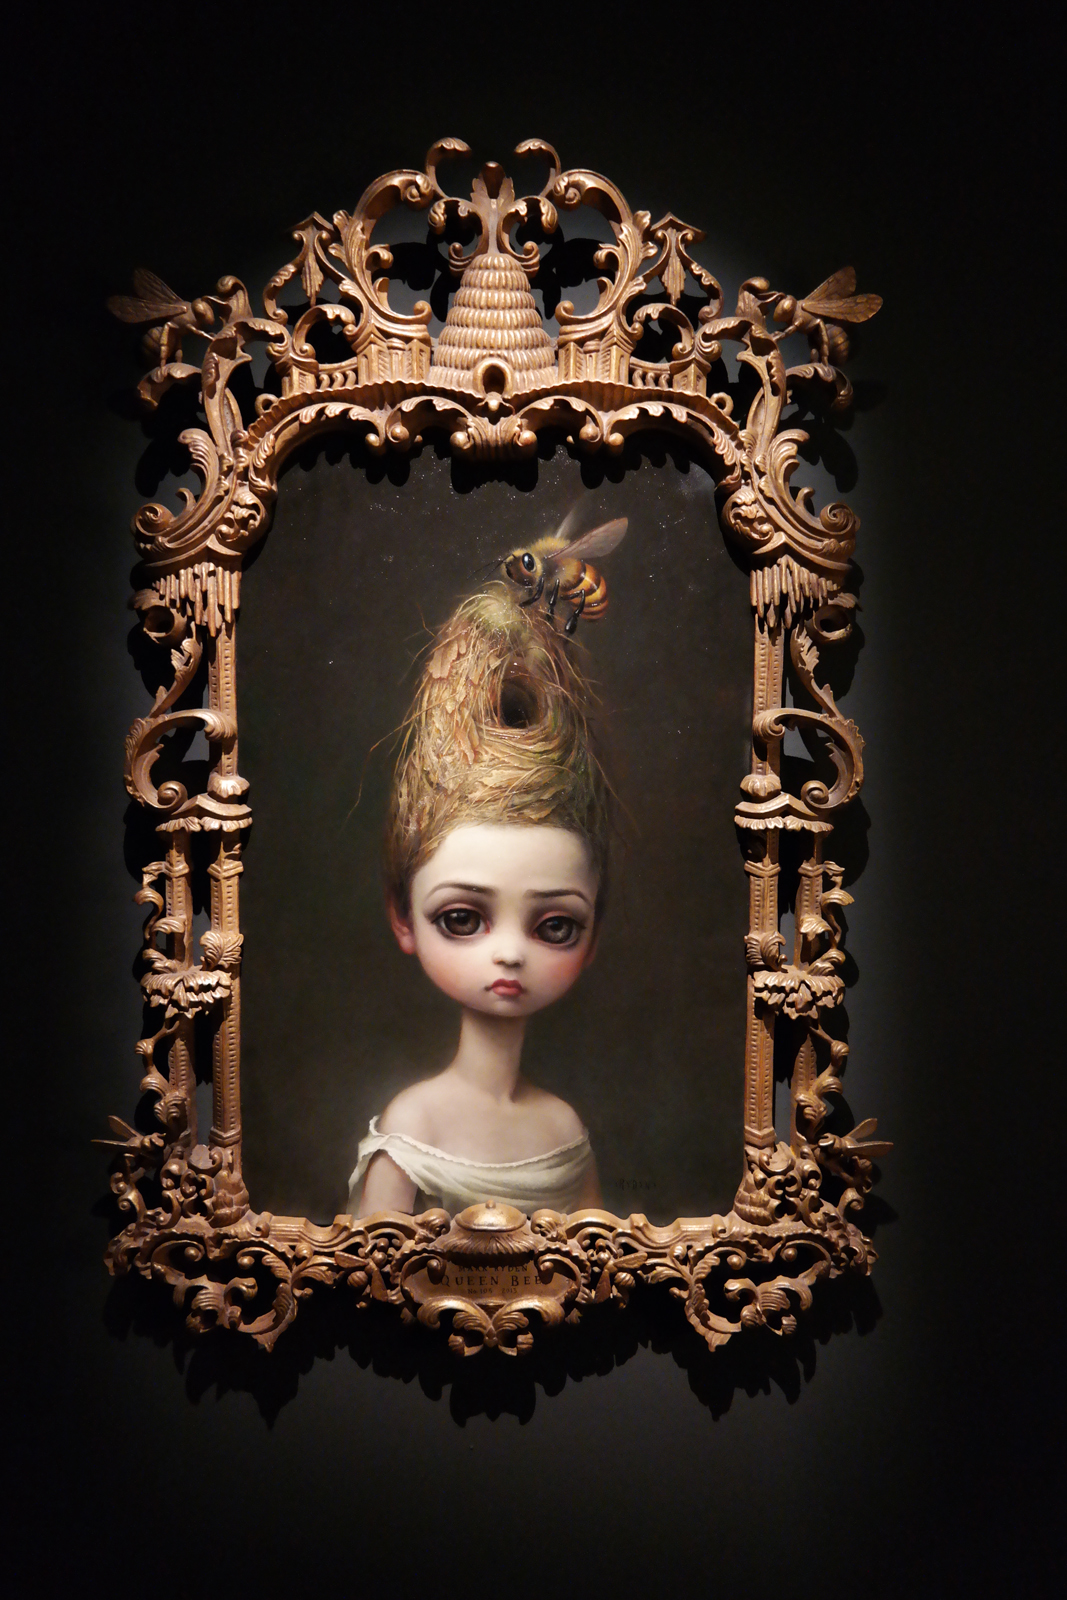 Hey! Act III exposition Halle saint pierre paris exhibition Queen Bee 2013 oil on canvas by Mark Ryden american painter collection privée photo usofparis